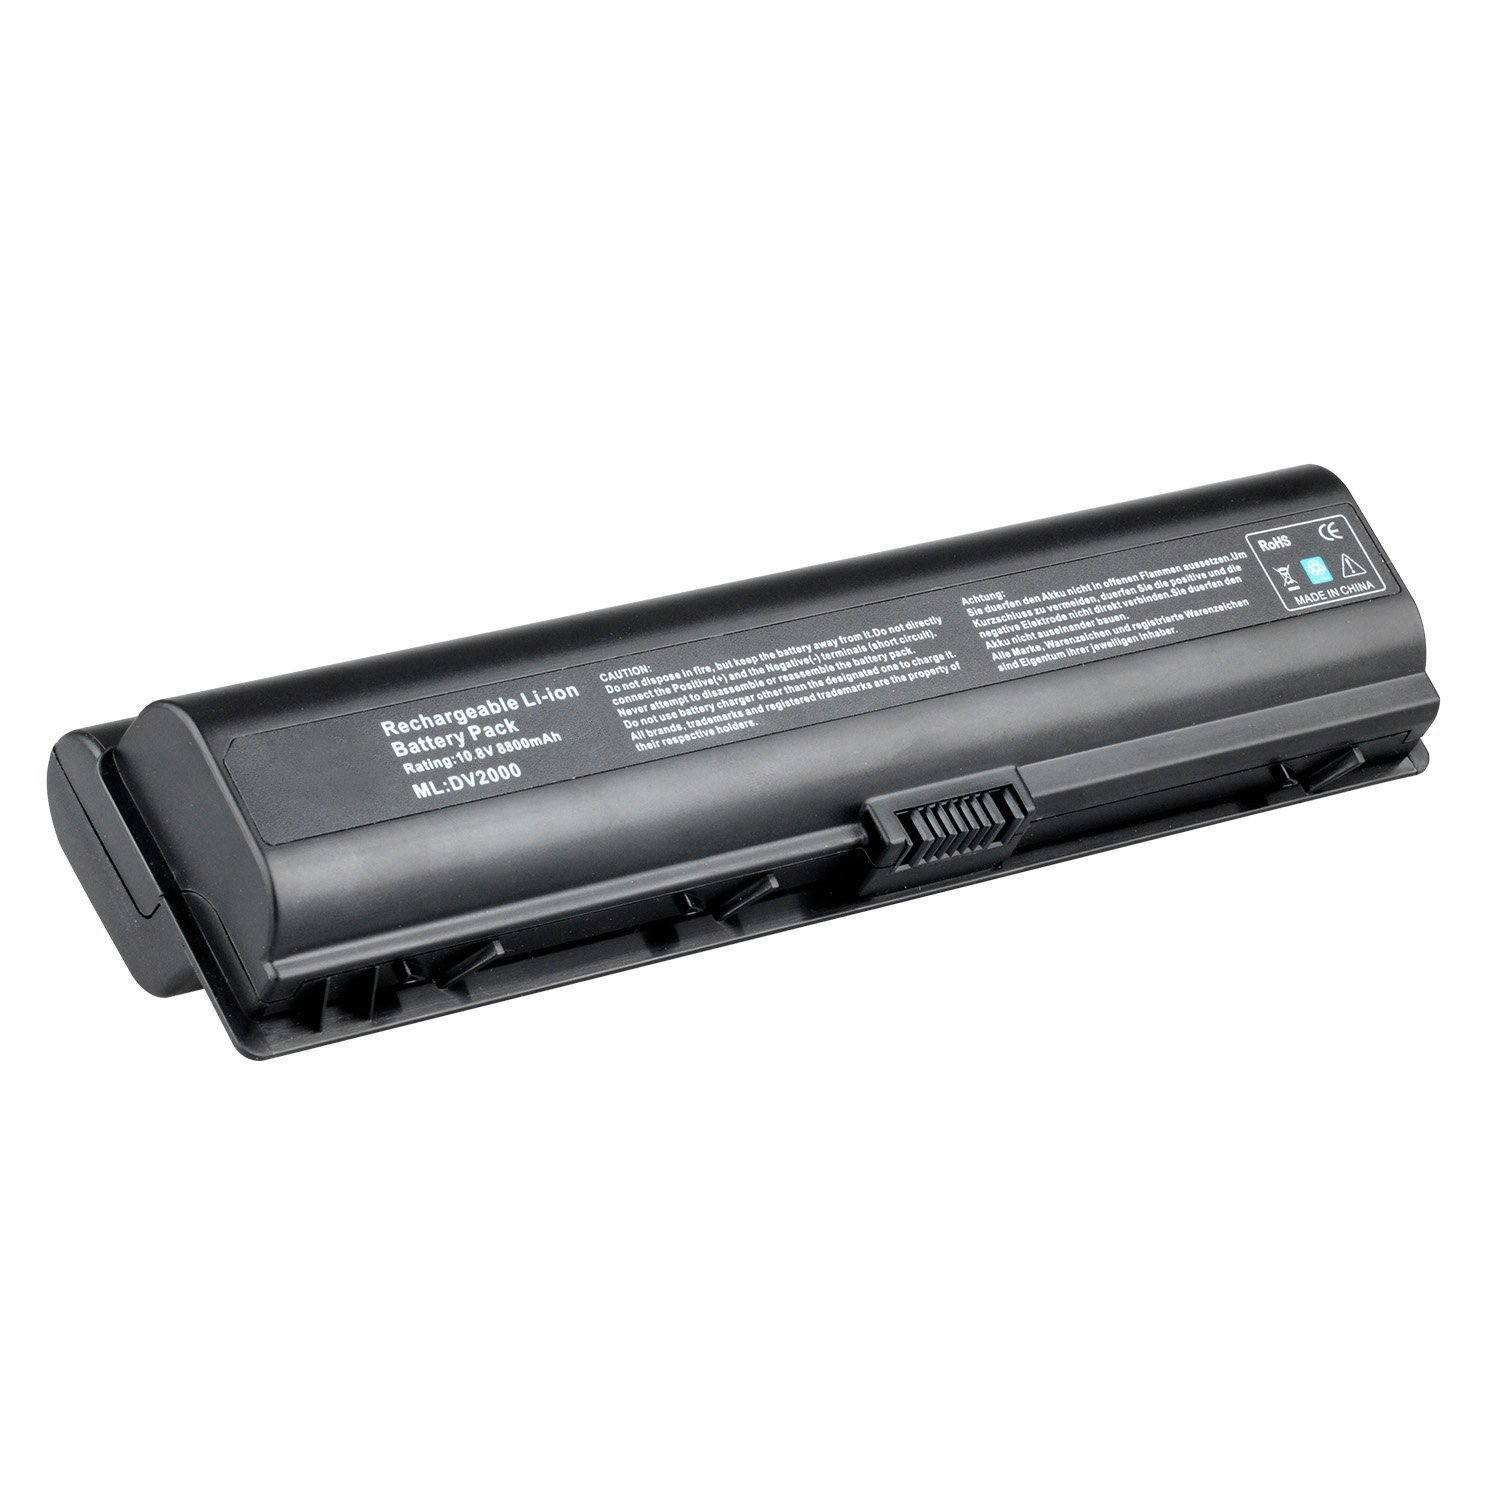 Skyvast 12 Cell Extended Capacity (8800mAh) Laptop Battery for HP Pavilion DV2000 DV6000 All Series, Compaq Presario A900 C700 F500 F700 V3000 V6000 G6000 G7000